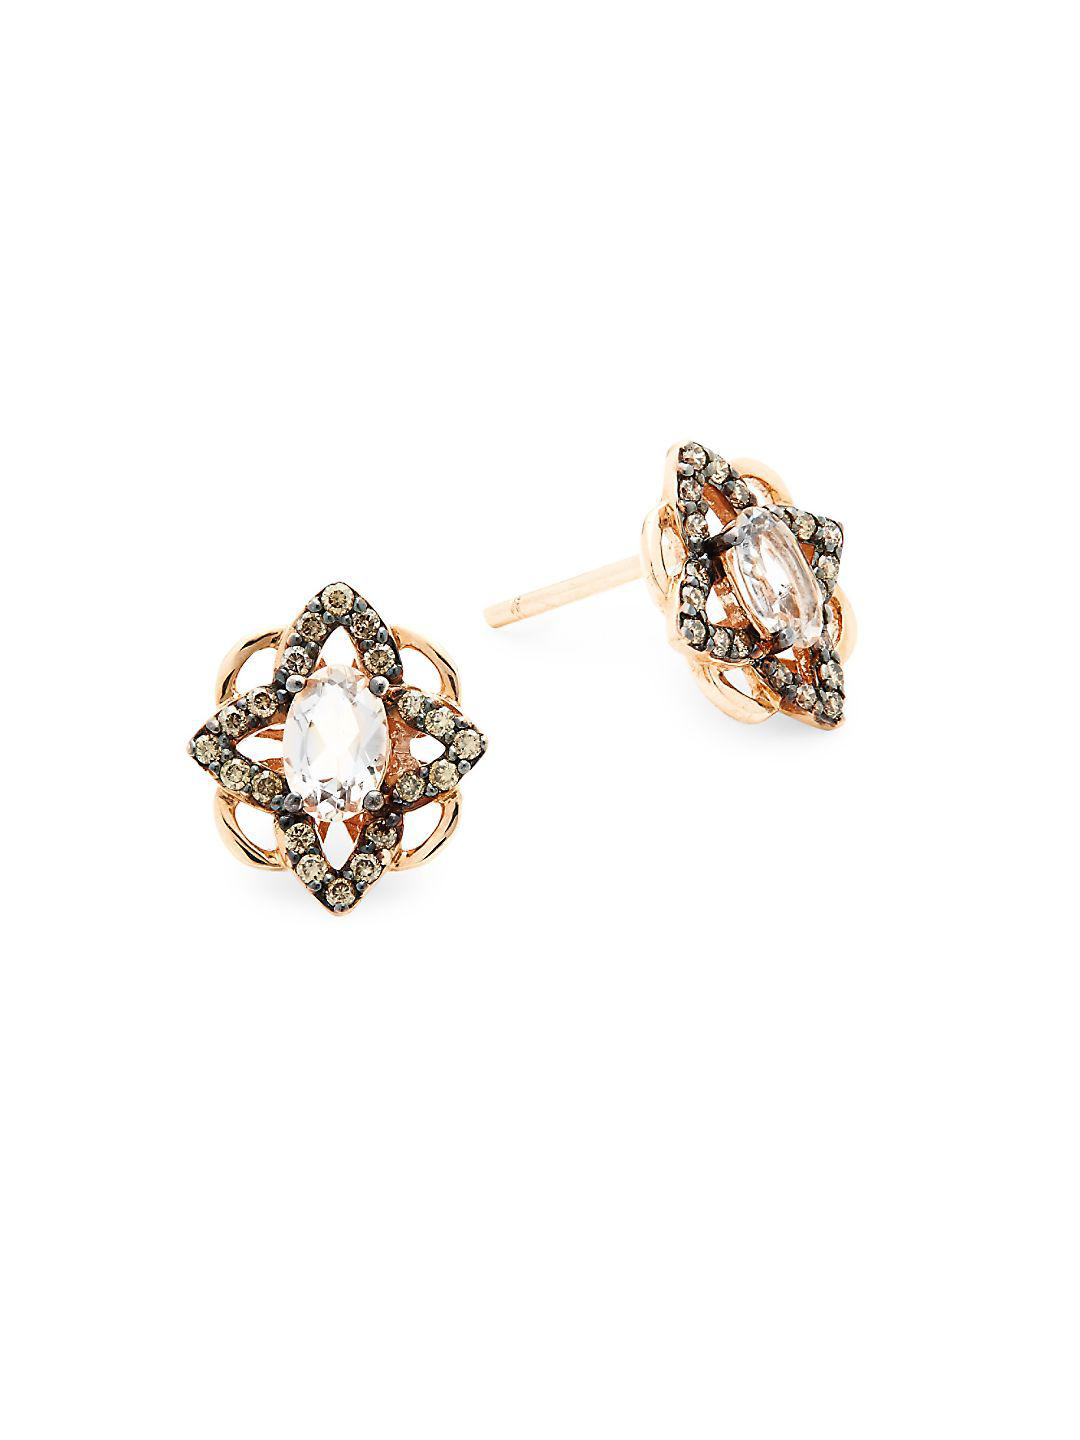 Gallery Previously Sold At Gilt Women S Diamond Earrings Le Vian Chocolate Diamonds